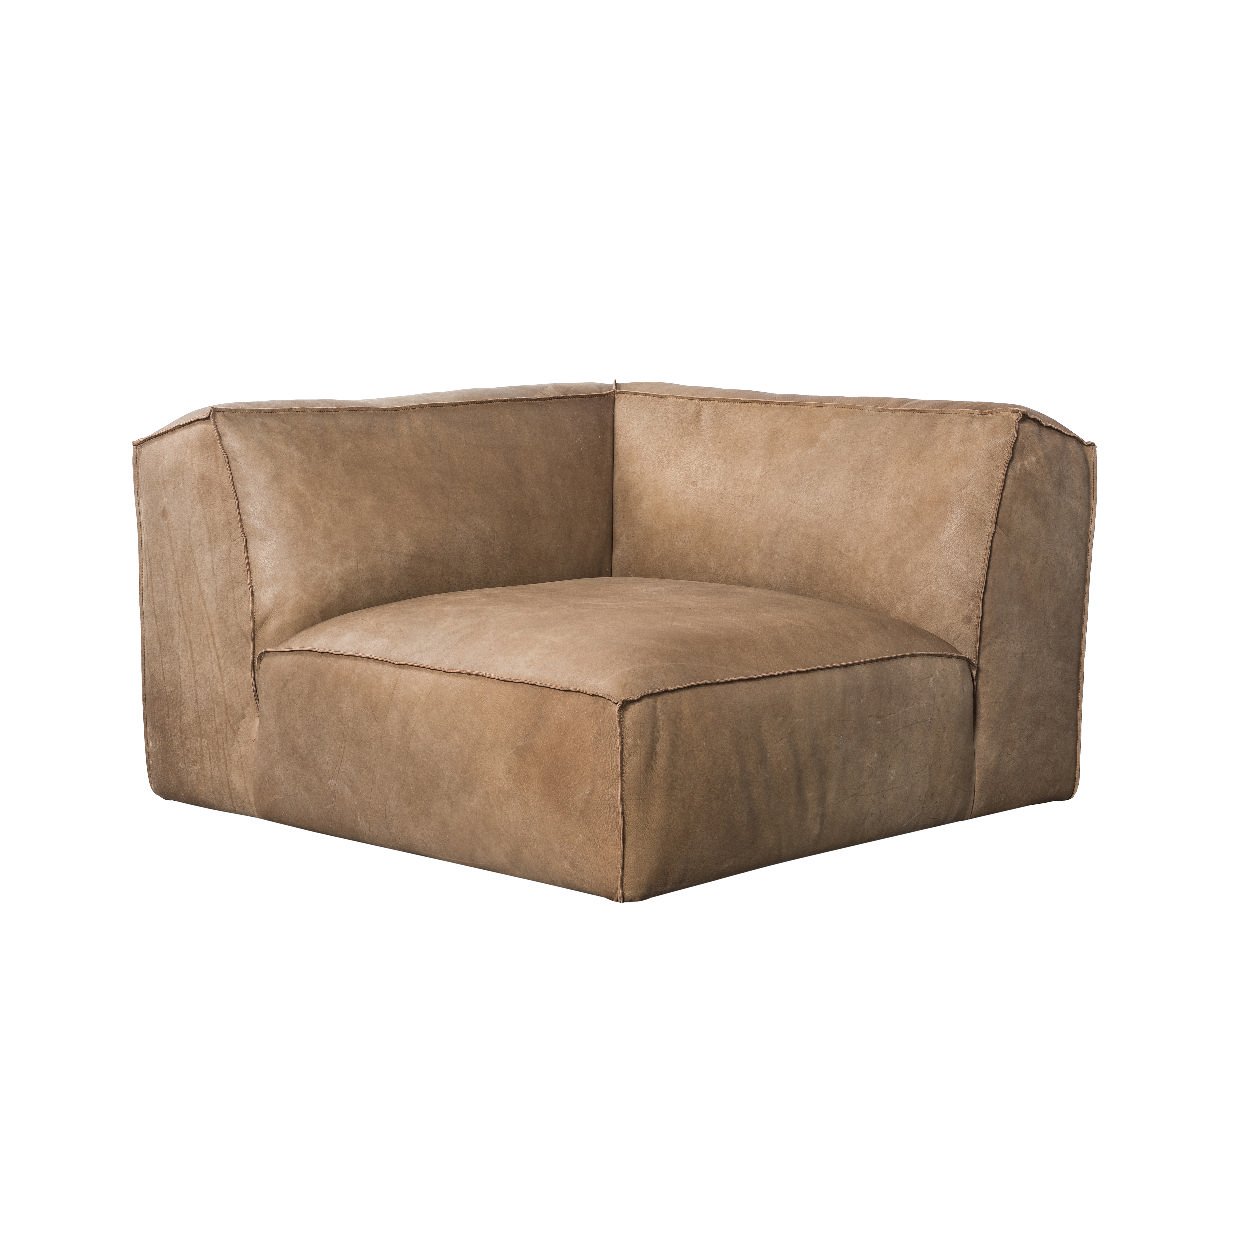 Sectional Corner Couch Timothy Oulton Nirvana Sectional Corner Sofa Large